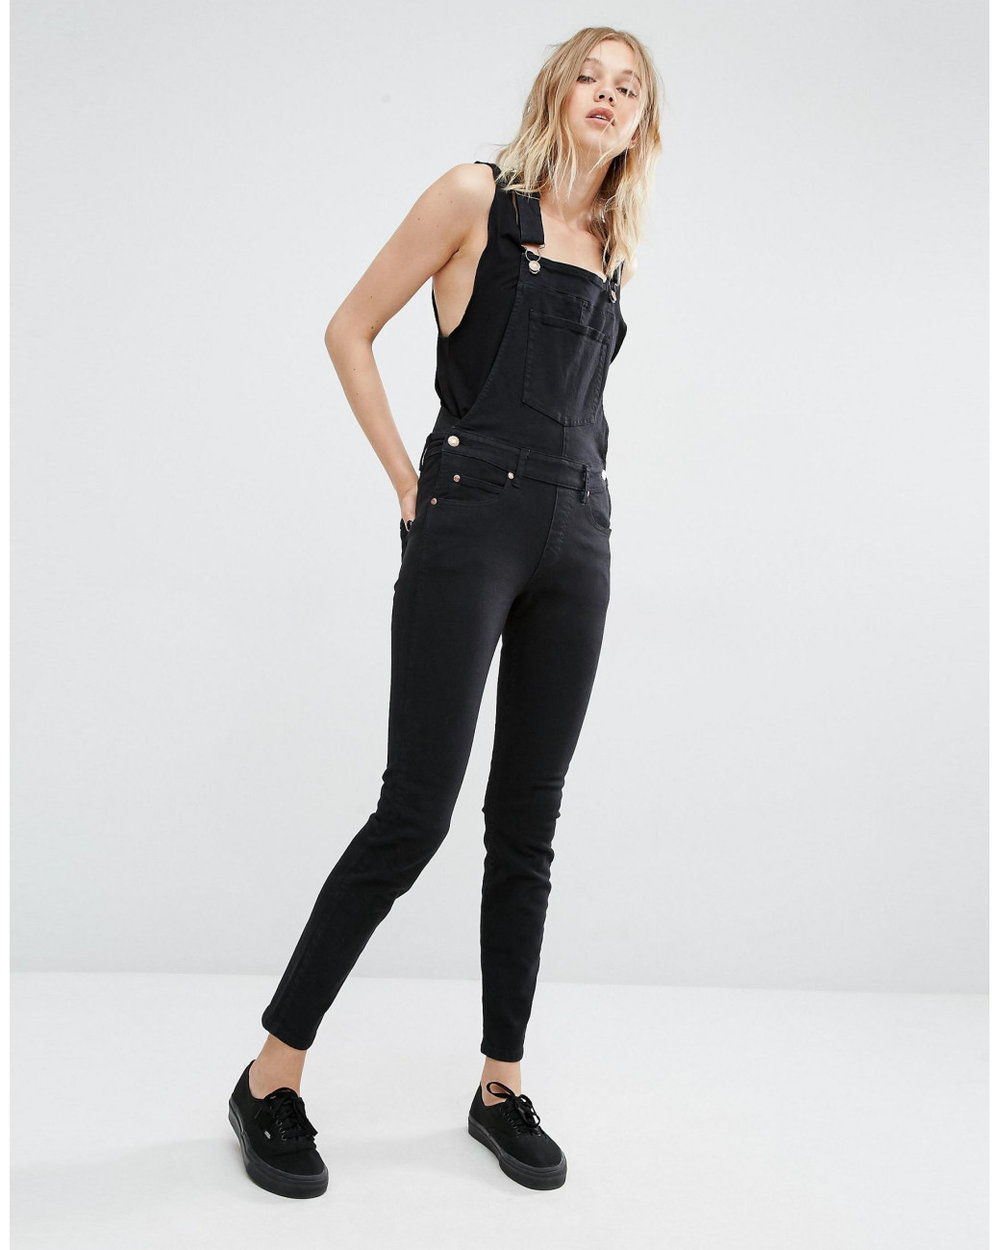 Absolutely love overalls. Some people might be a bit worried That they can seem unflattering on, however it all depends on the fit and your body shape. I happen to be on the short side so i would go for a skinny overall vs a boyfriend overall